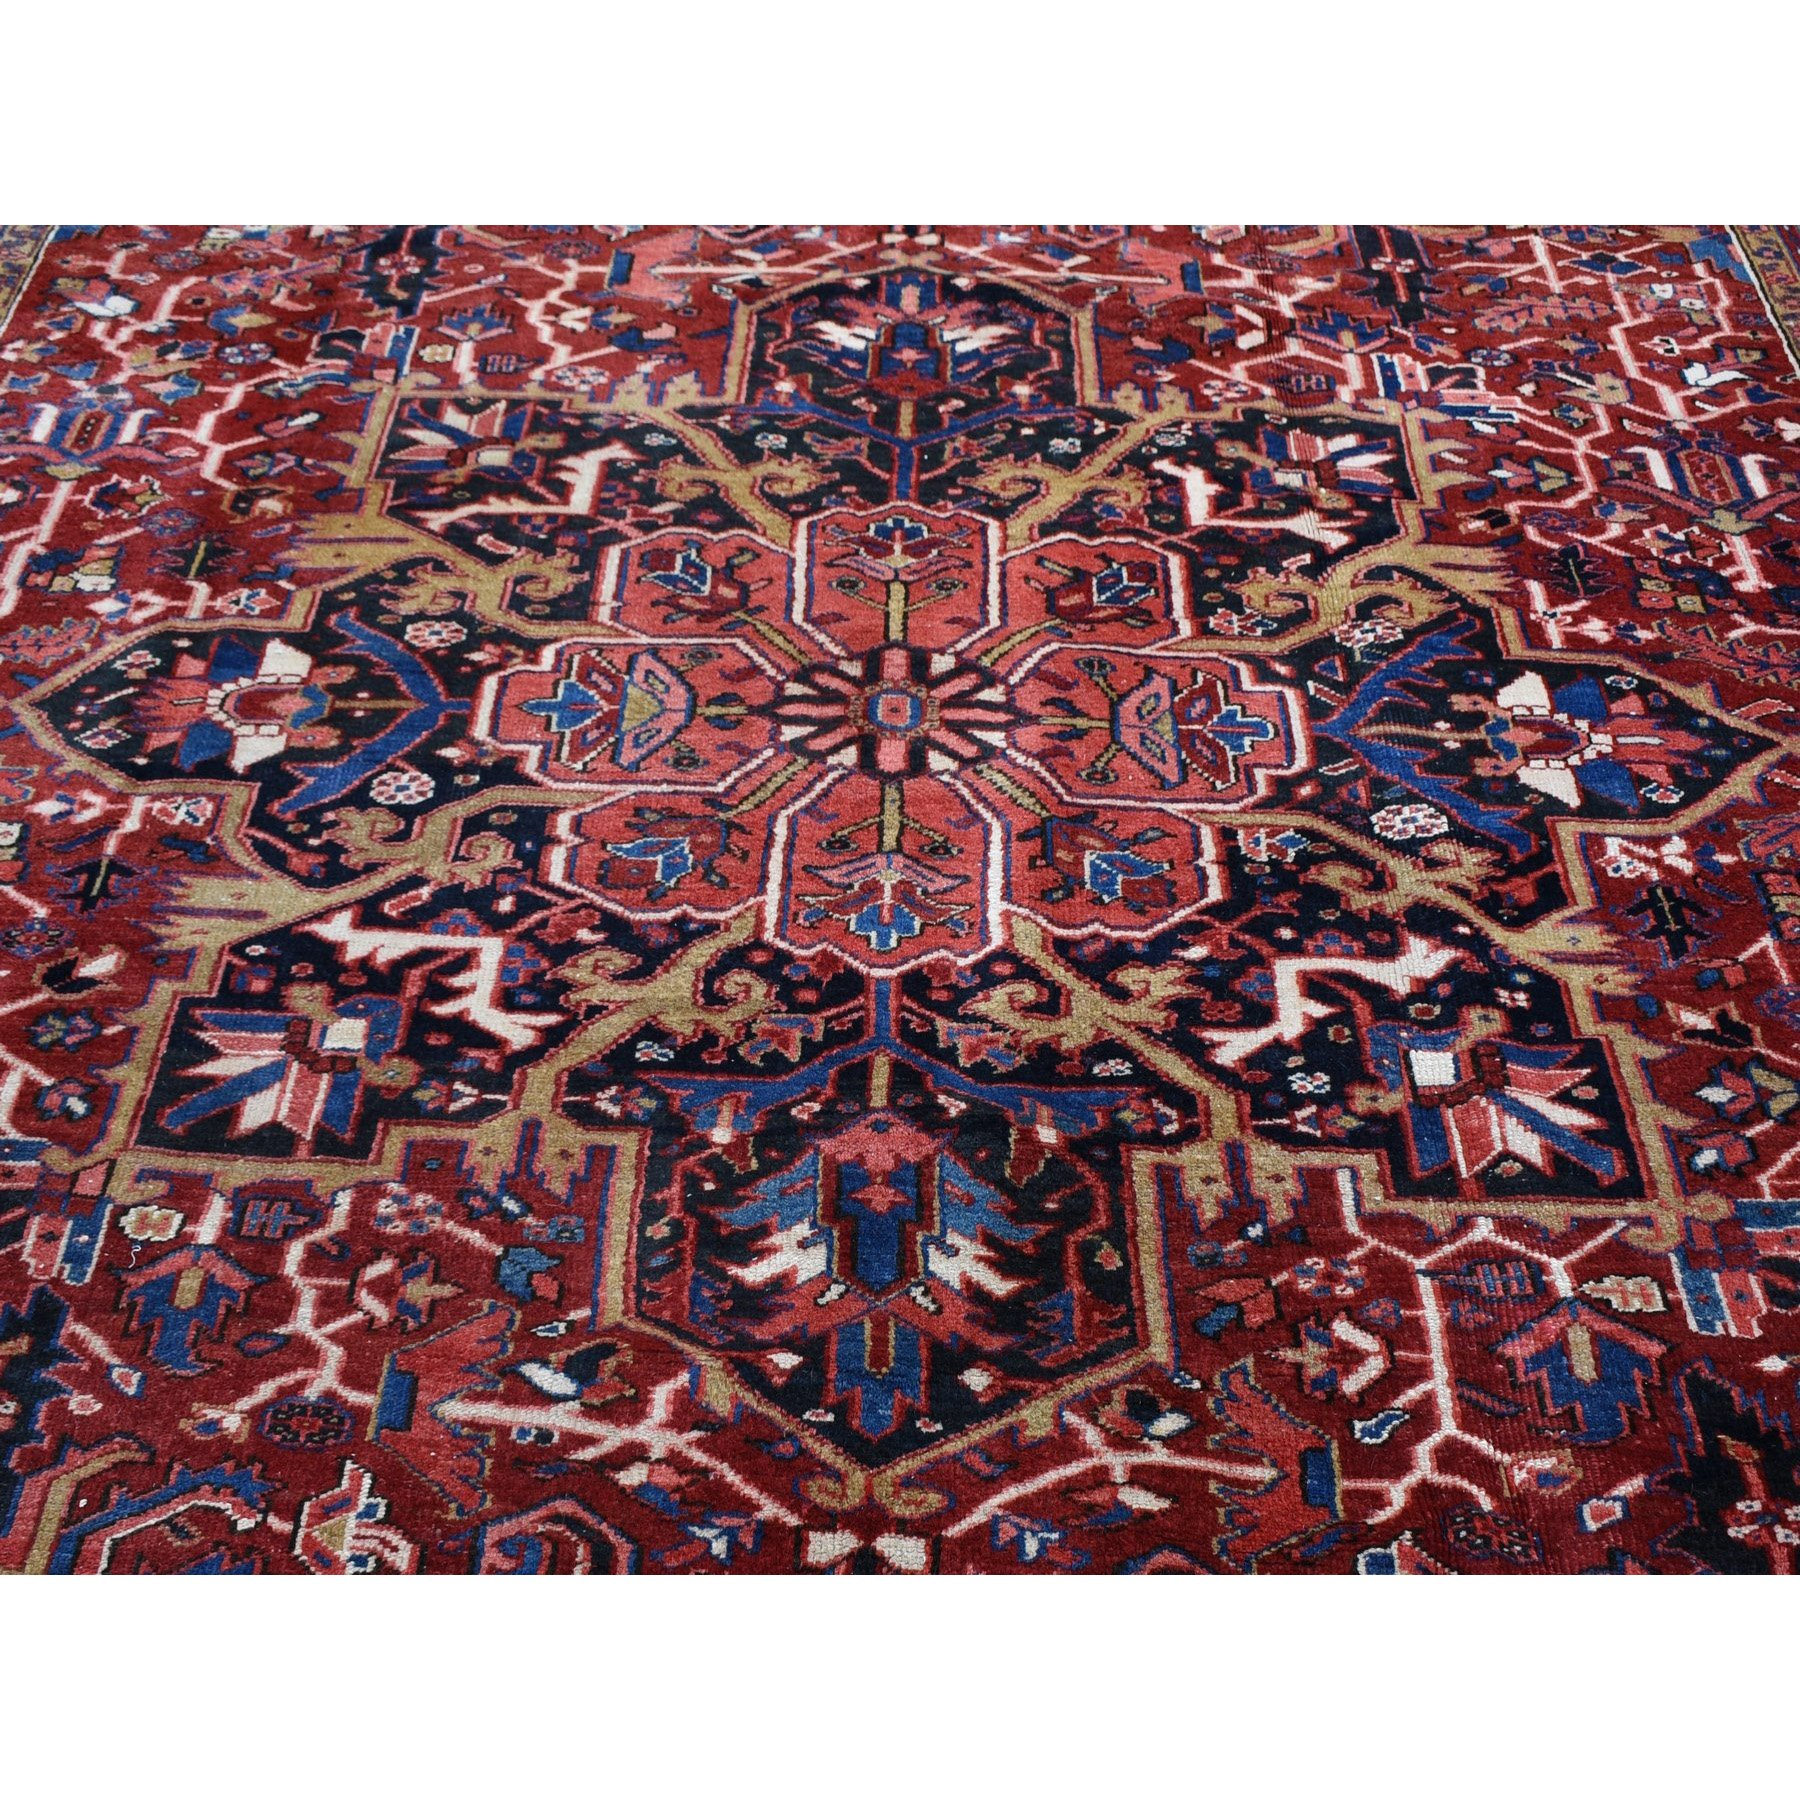 10-10 x14-4  Red Antique Persian Heriz Pure Wool Hand Knotted Exc Cond XL Oriental Rug